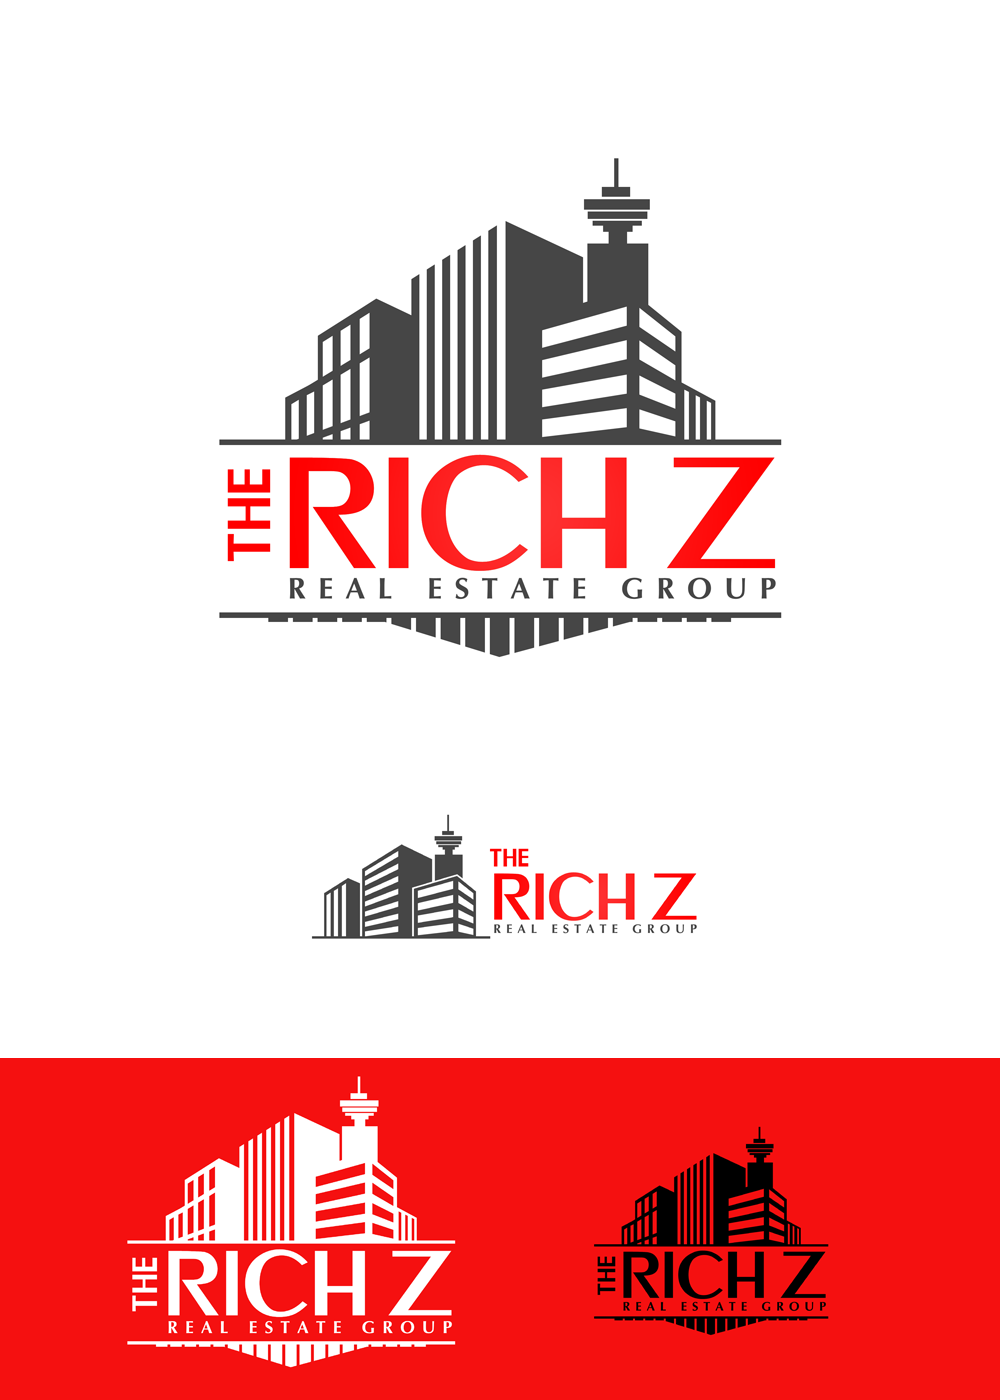 Logo Design by Private User - Entry No. 403 in the Logo Design Contest The Rich Z. Real Estate Group Logo Design.